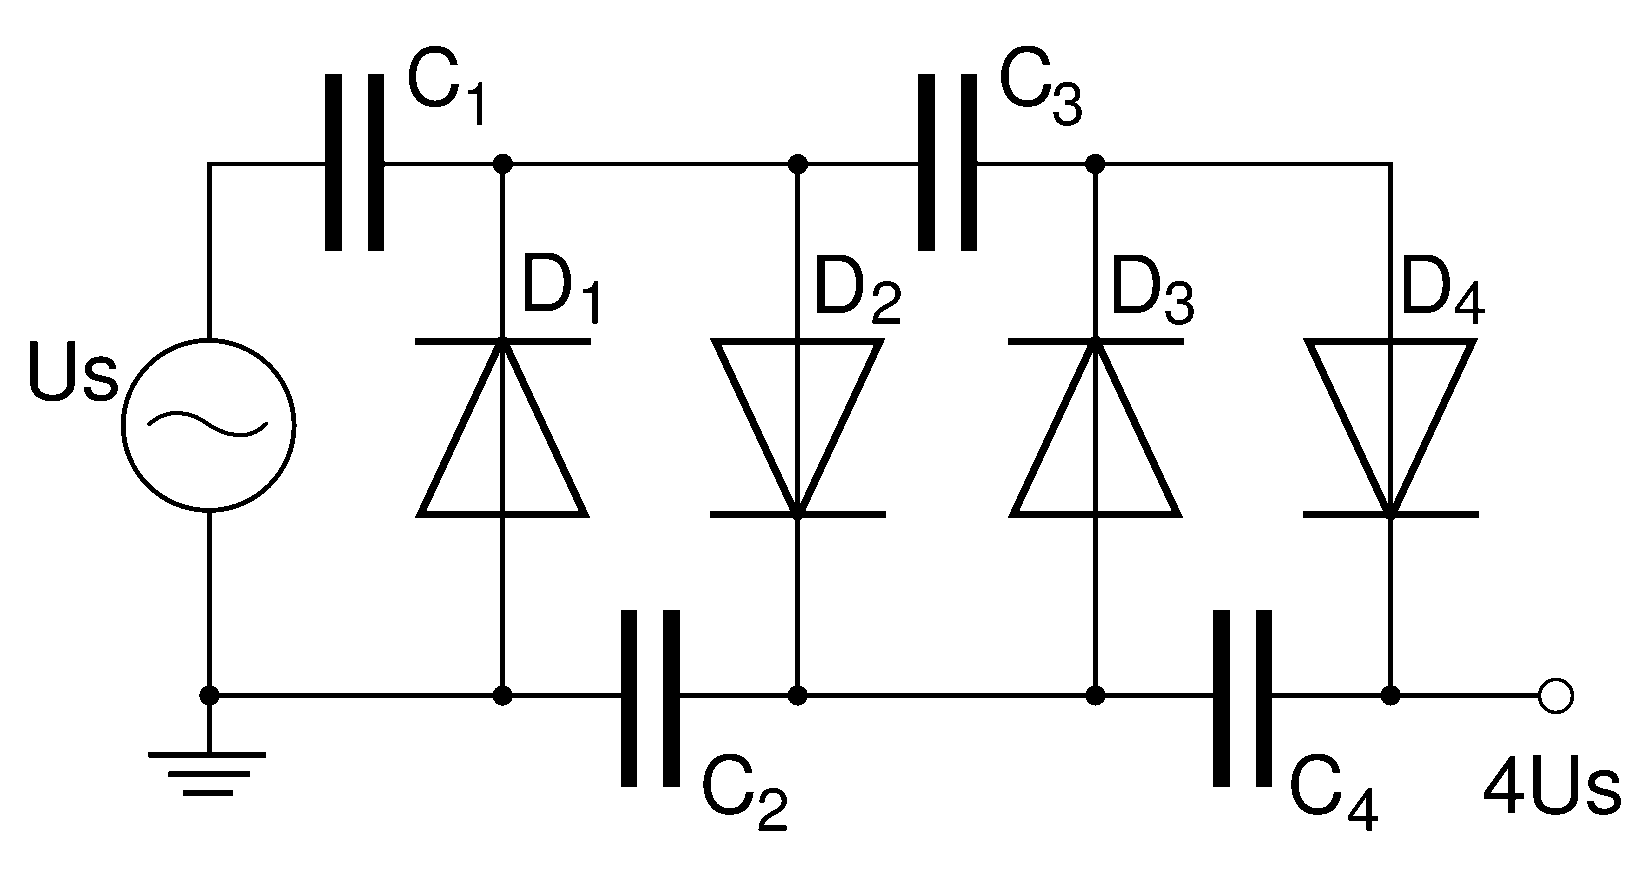 circuit diagram vector